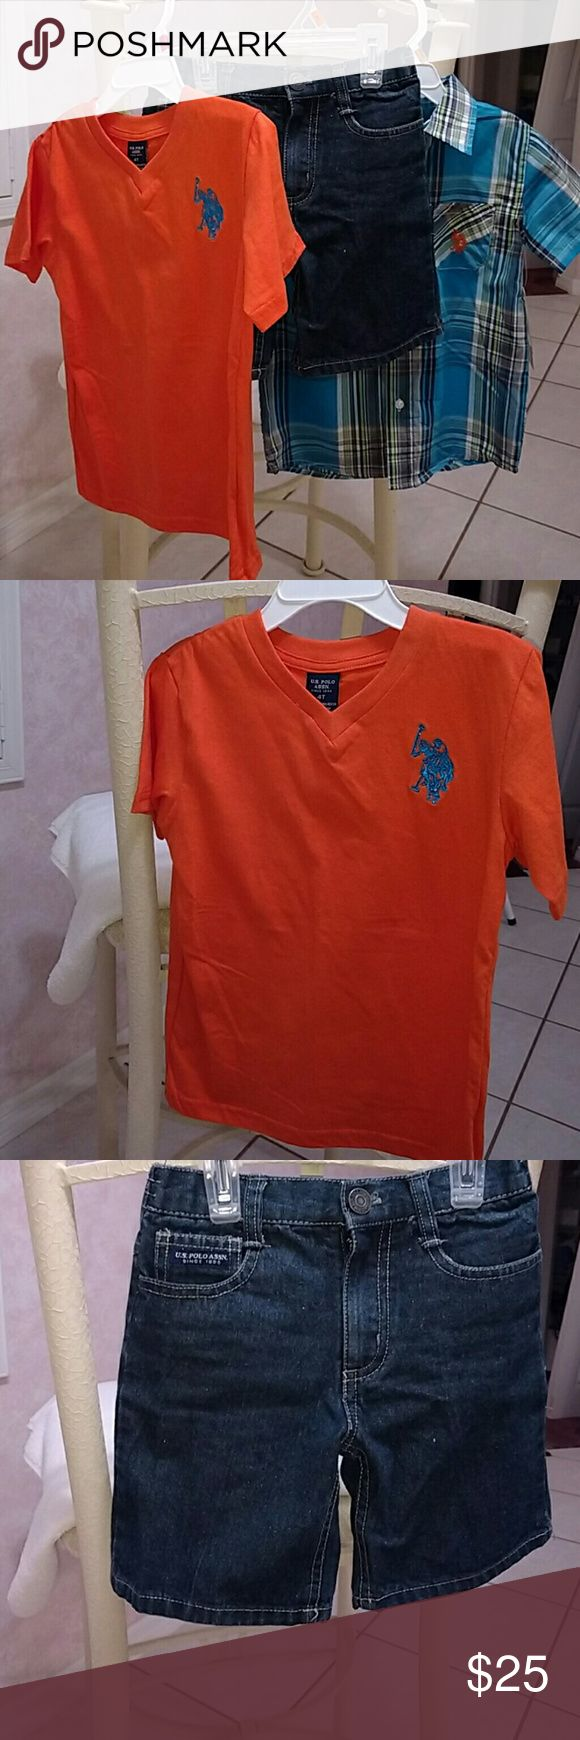 Toddler boy outfit! Brand new with the tags! Toddler boy U.S. Polo Association outfit. U.S. Polo Assn. Matching Sets